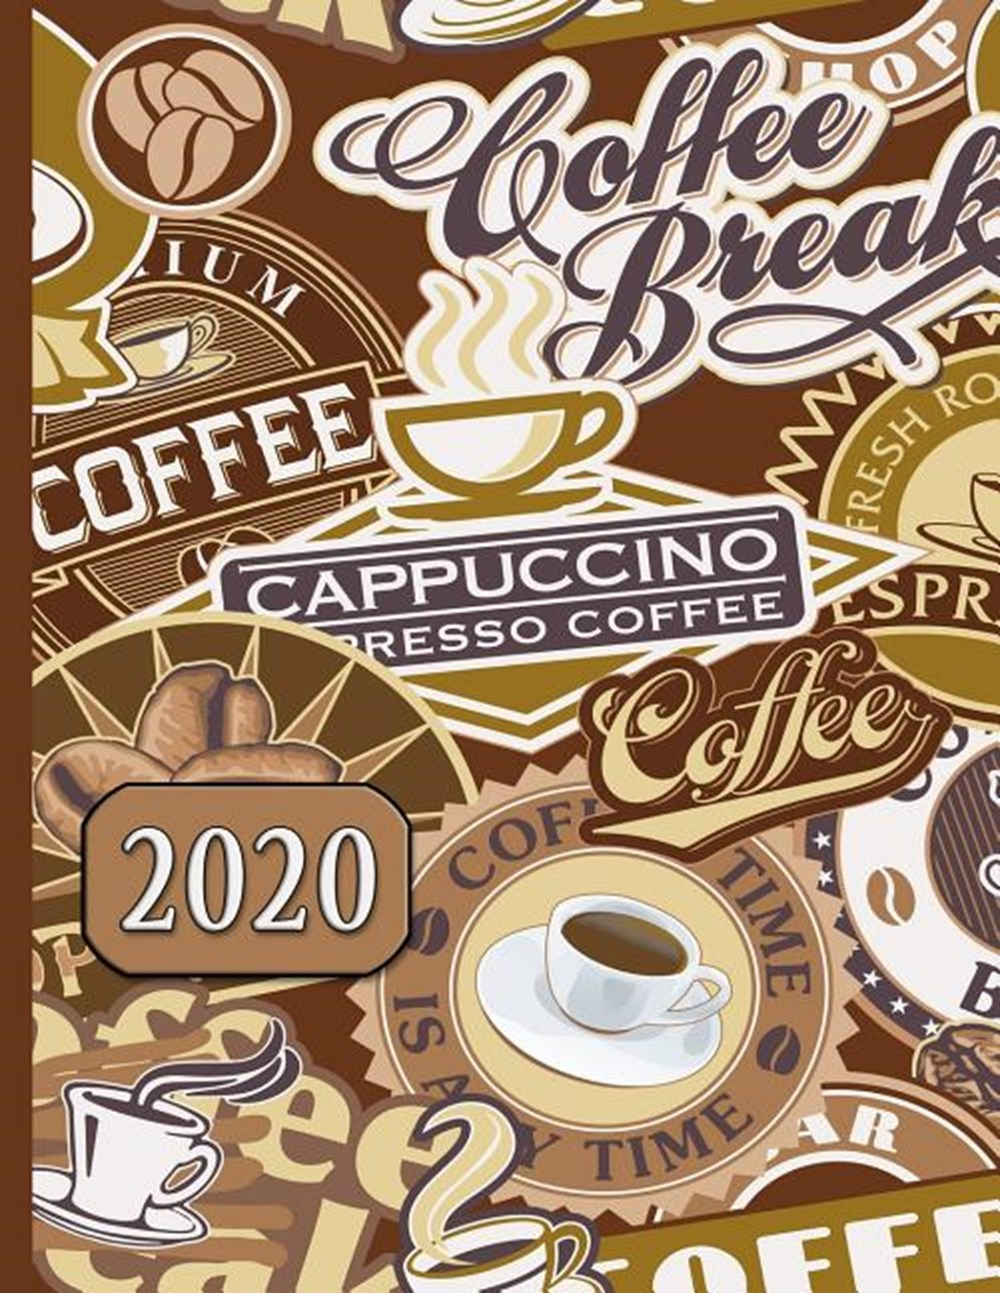 Coffee Break, Cappuccino, Espresso 2020 Schedule Planner and Organizer / Weekly Calendar